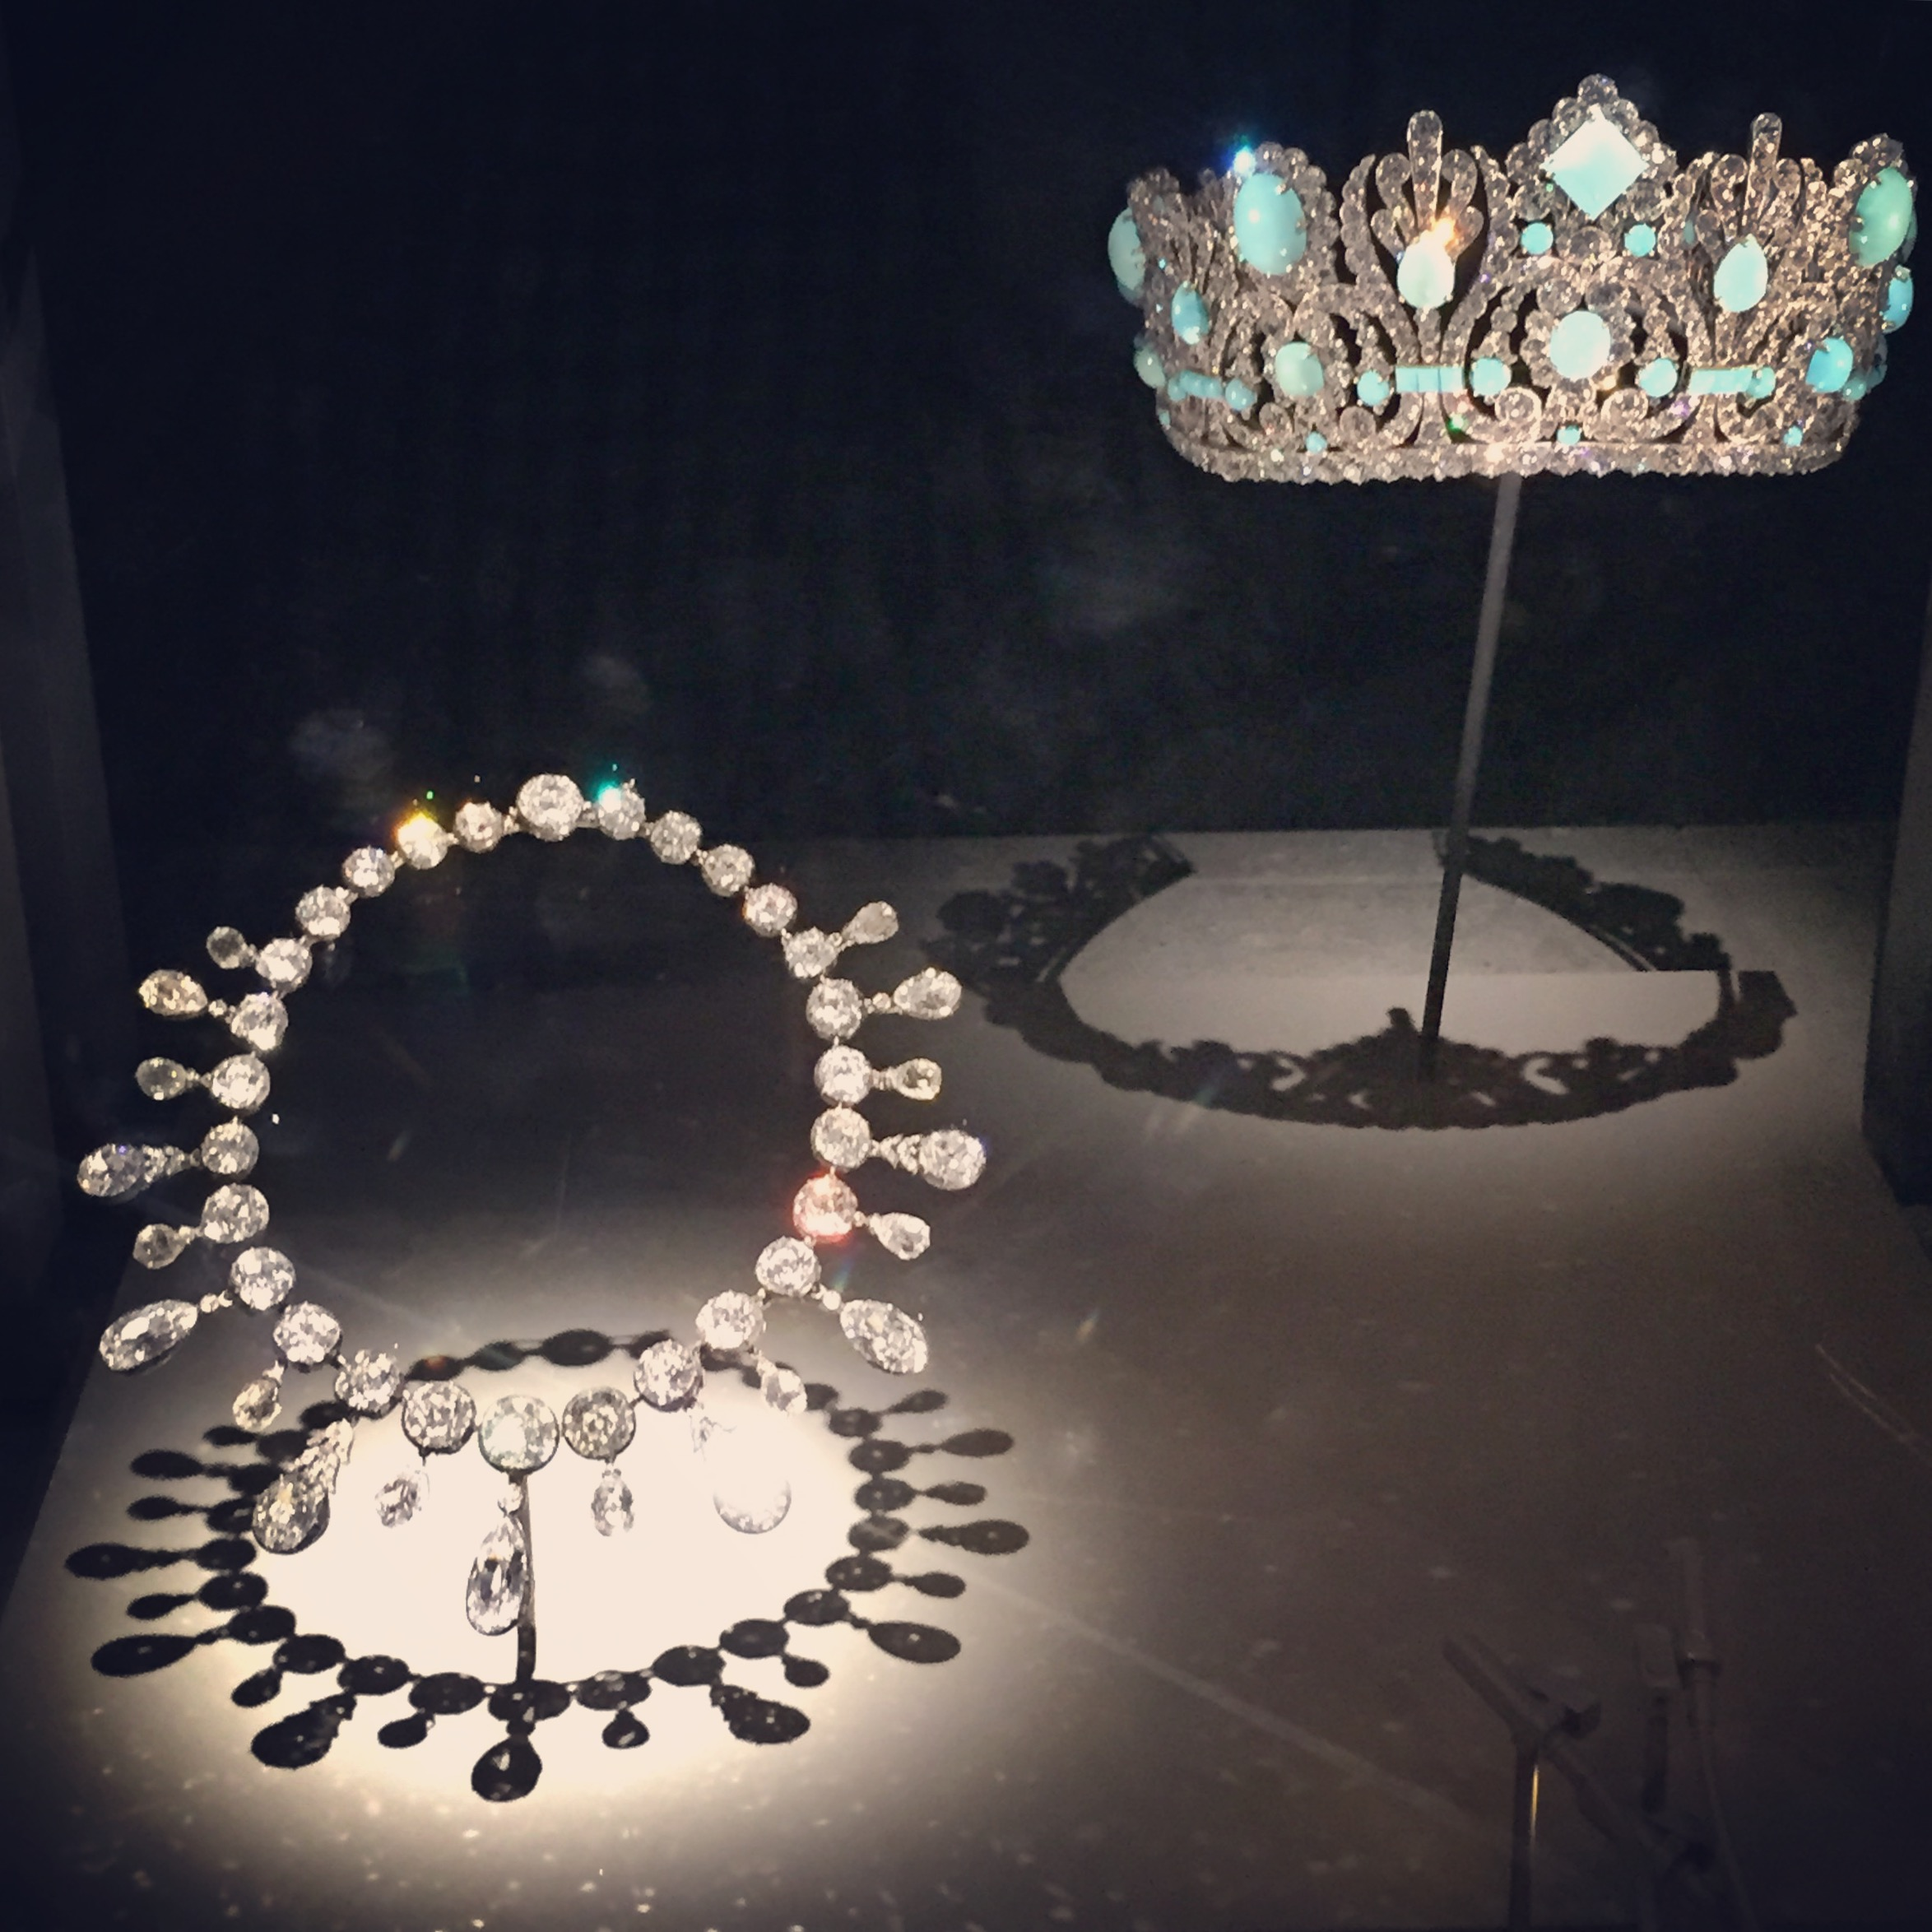 """The Marie Louis Diadem - the crown - originally held emeralds, not turquoise. The emeralds were taken out and sold individually as """"emeralds from the historic Napoleon Tiara.""""Between 1954 and1956 Van Cleef & Arpels mounted the turquoise to replace the original stones."""